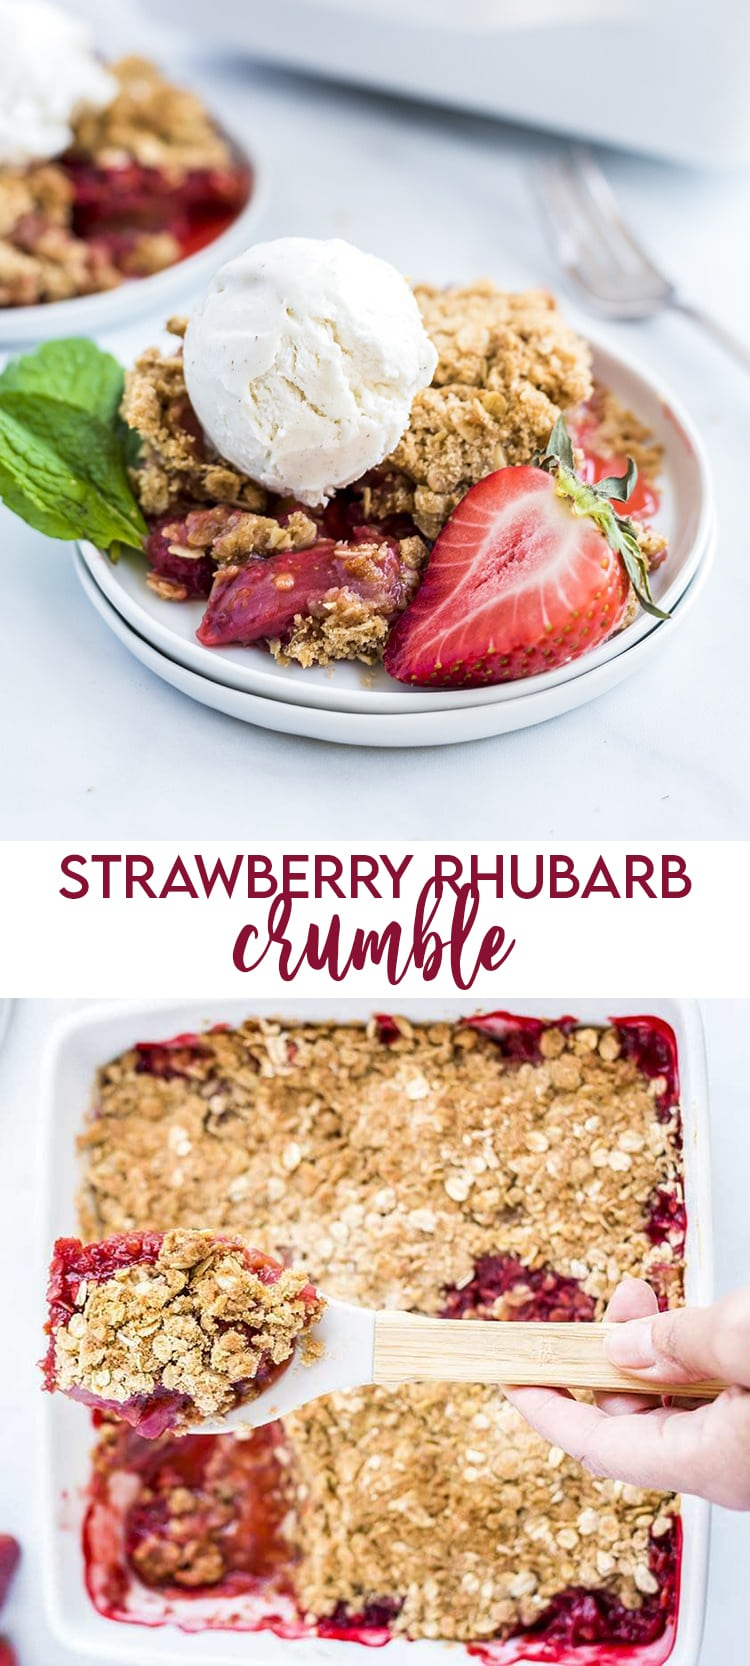 Strawberry Rhubarb Crumble topped with ice cream with text overlay for pinterest